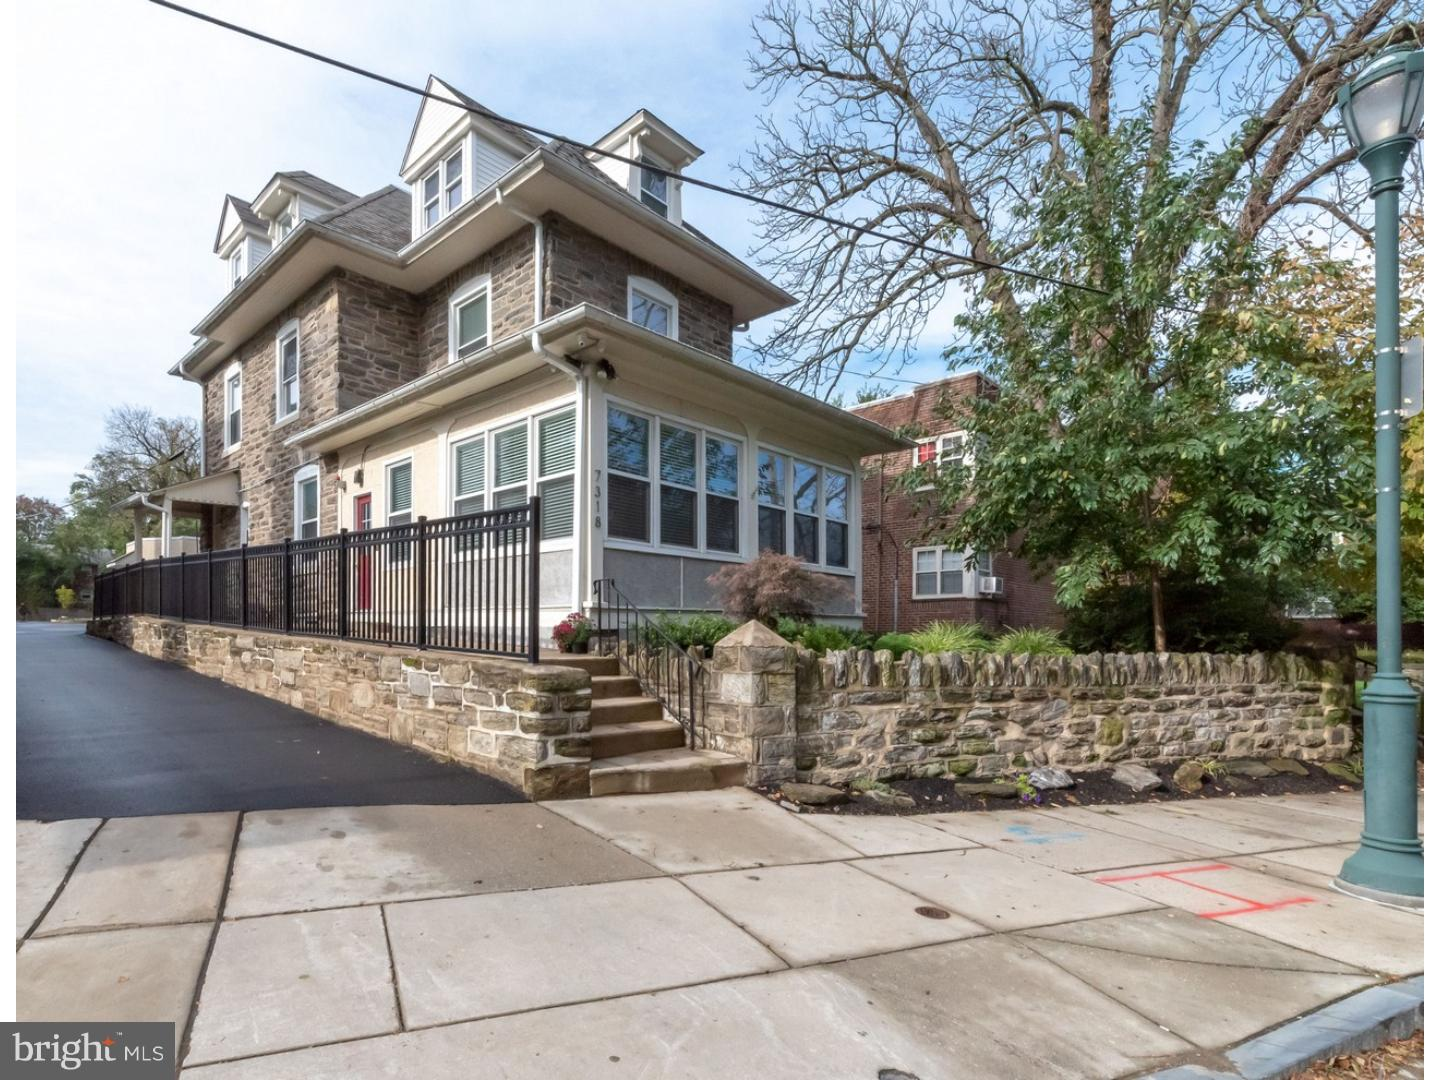 7318 GERMANTOWN AVENUE, PHILADELPHIA, PA 19119